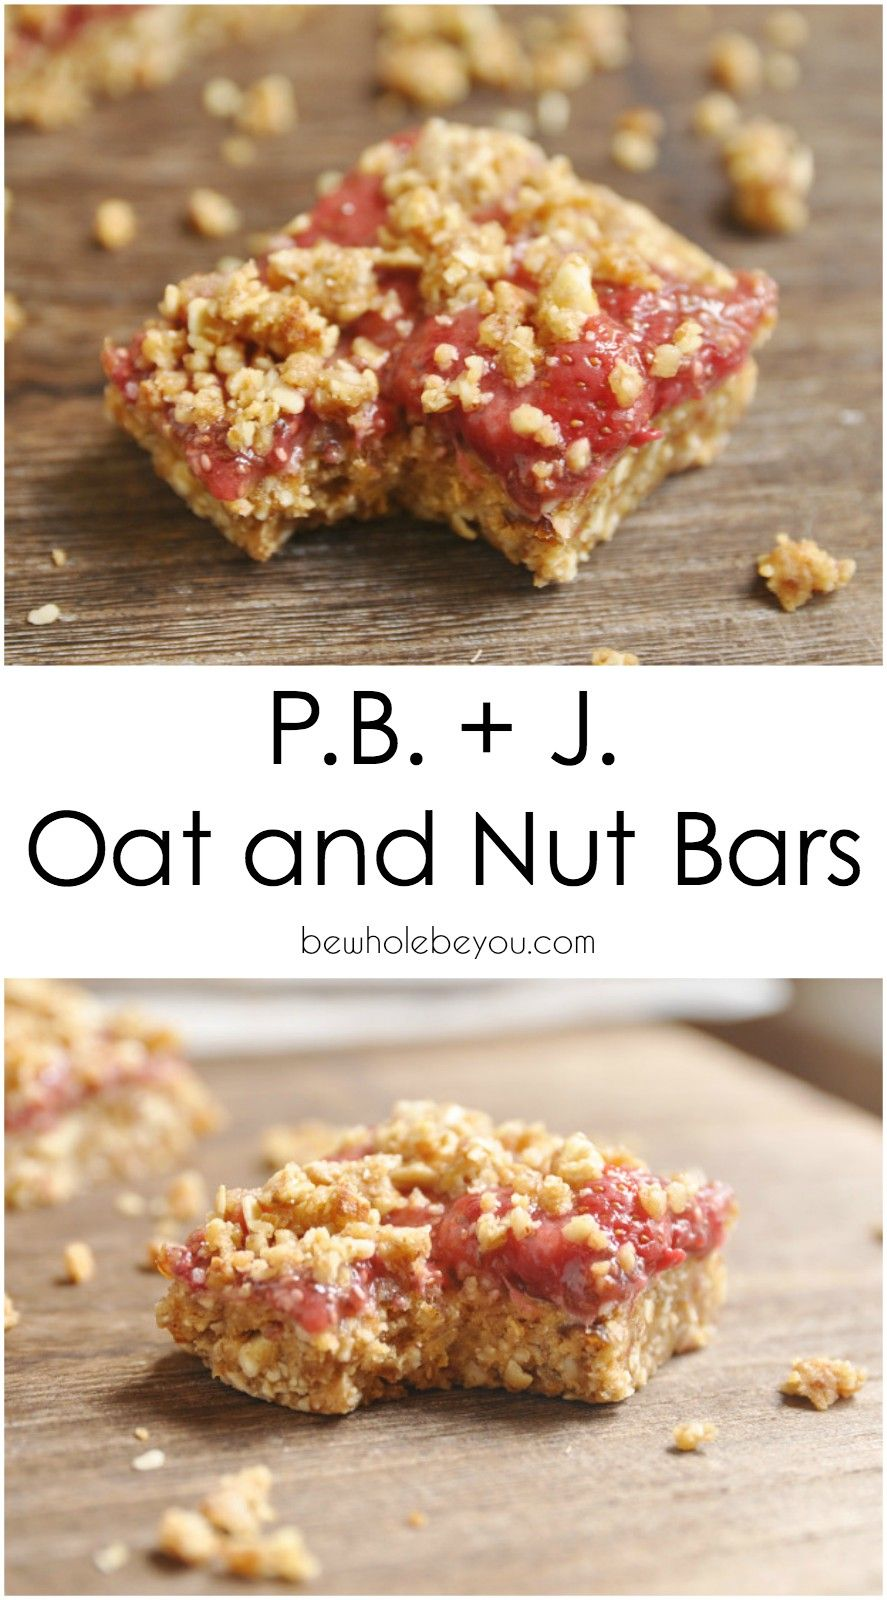 PB + J Oat and Nut Bars. Take your Peanut Butter and Jelly to a whole new level!